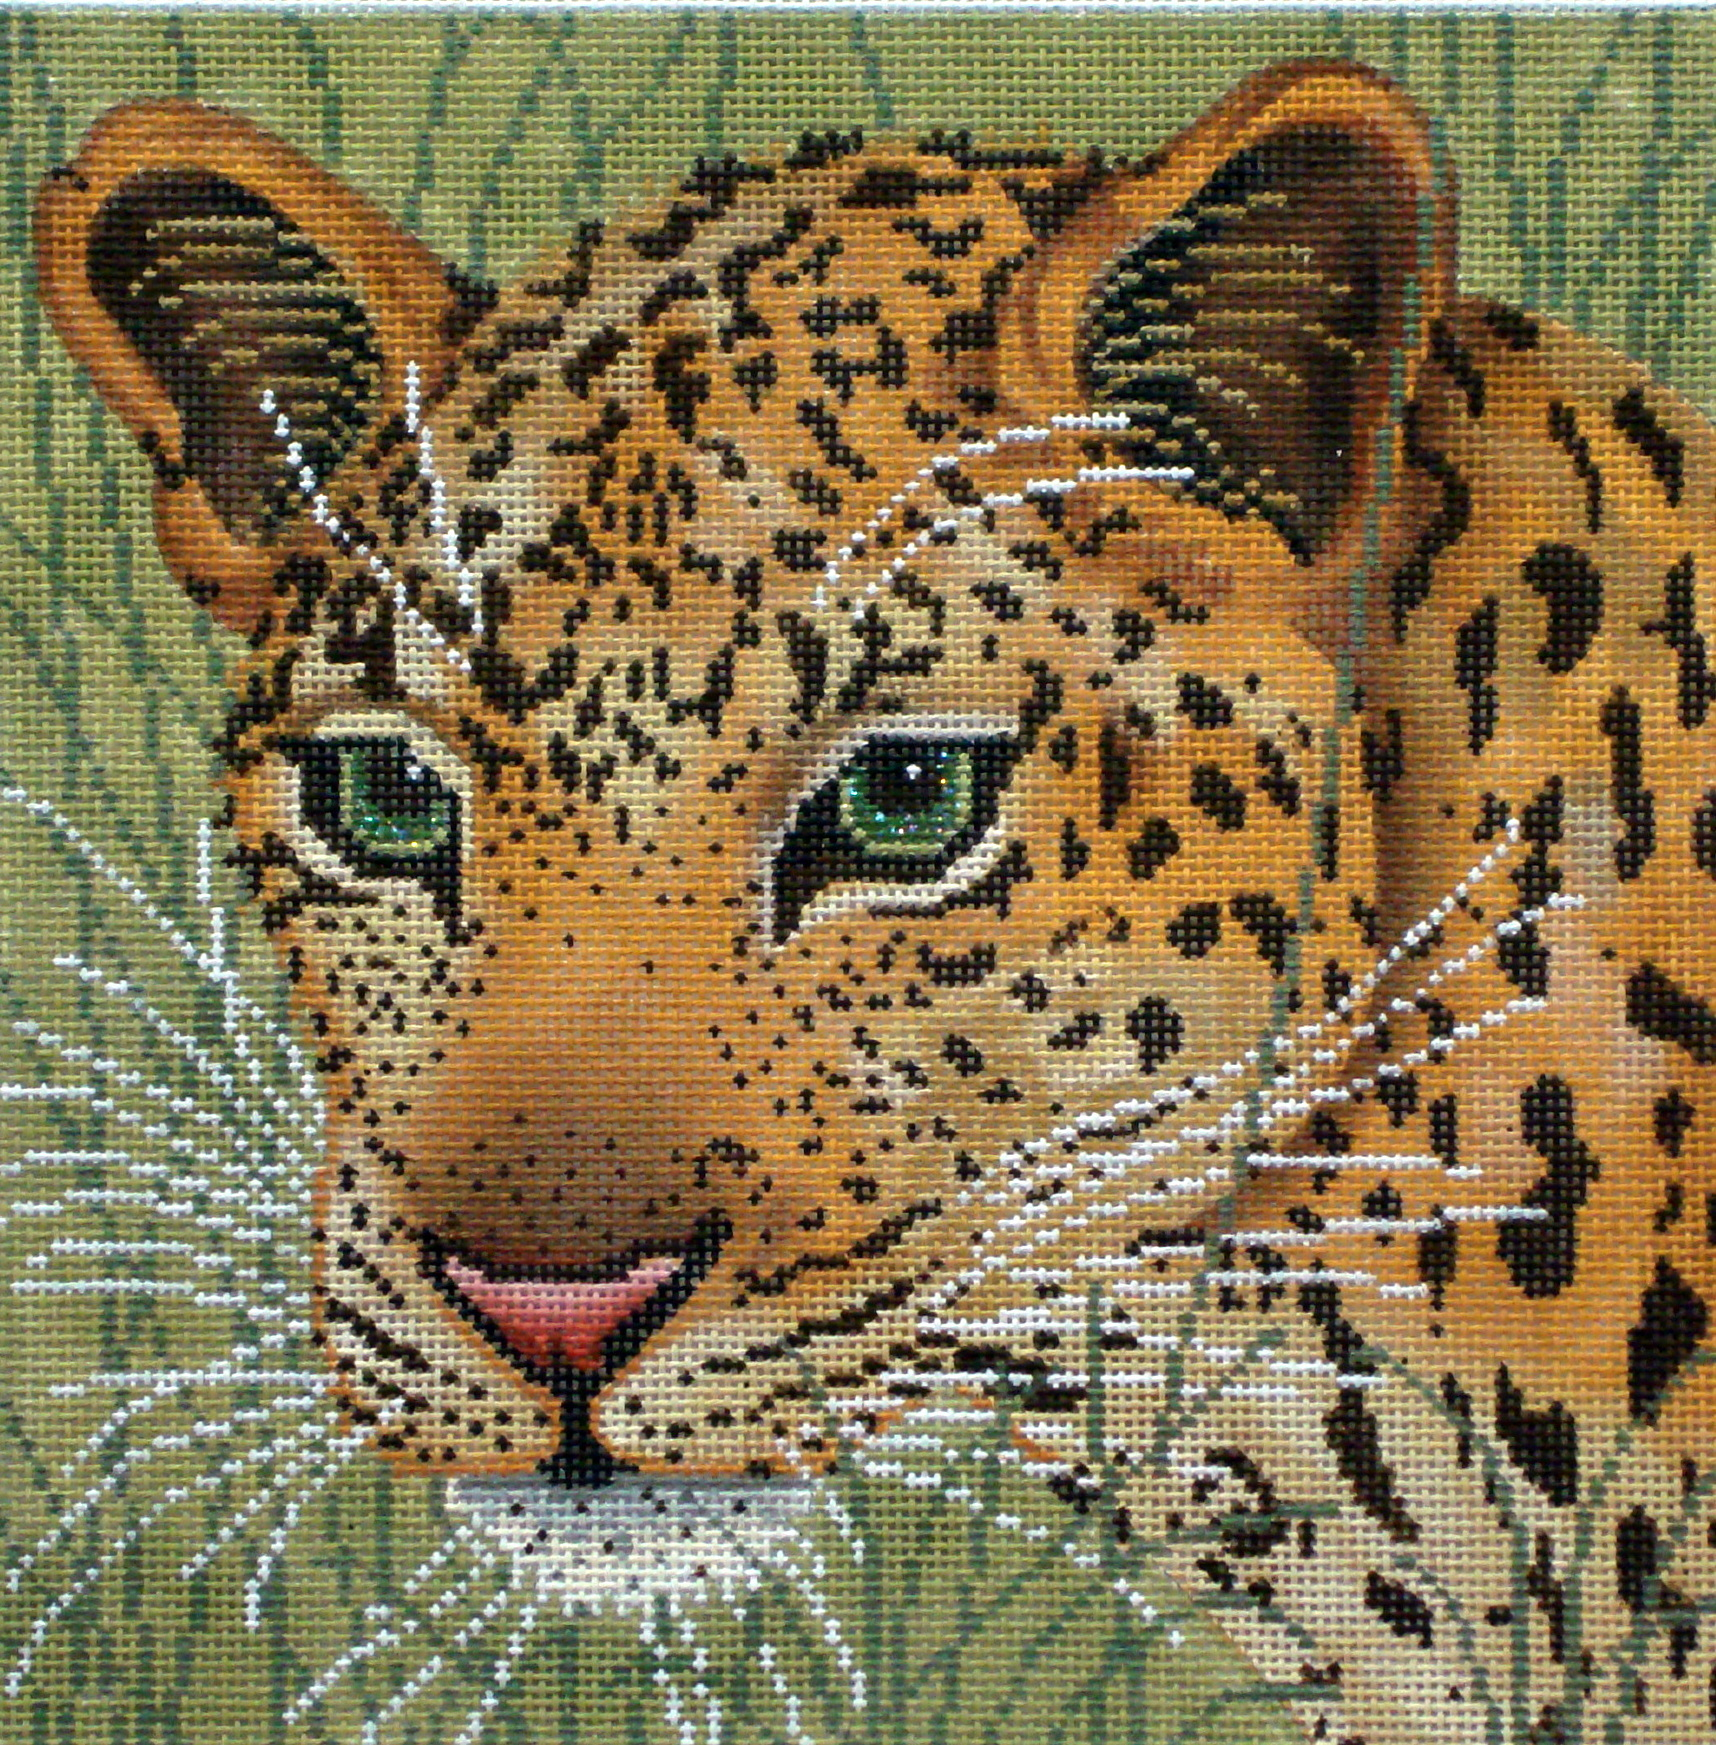 Leopard in Grasses    (handpainted needlepoint canvas by JP Needlepoint) 19*A106